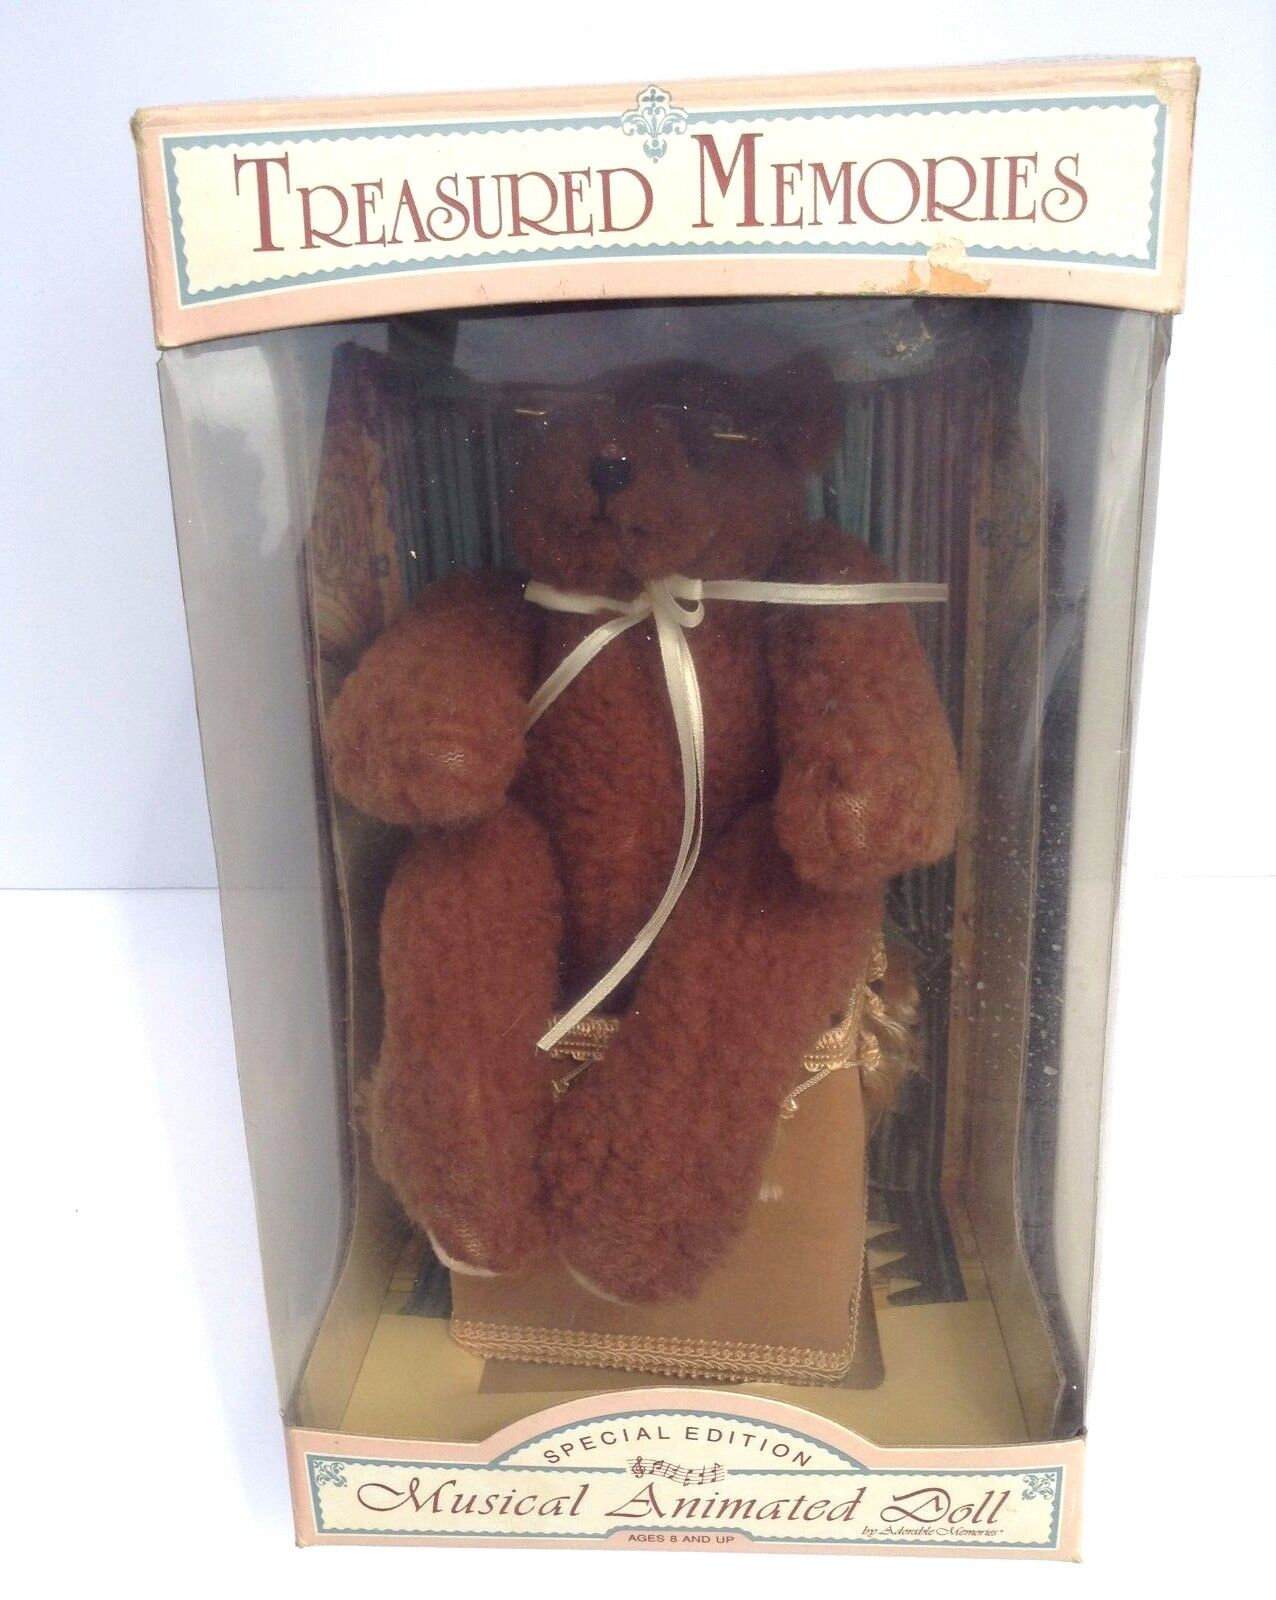 Treasurosso Memories Special Edition Musical Animated Teddy Bear Plays Love story